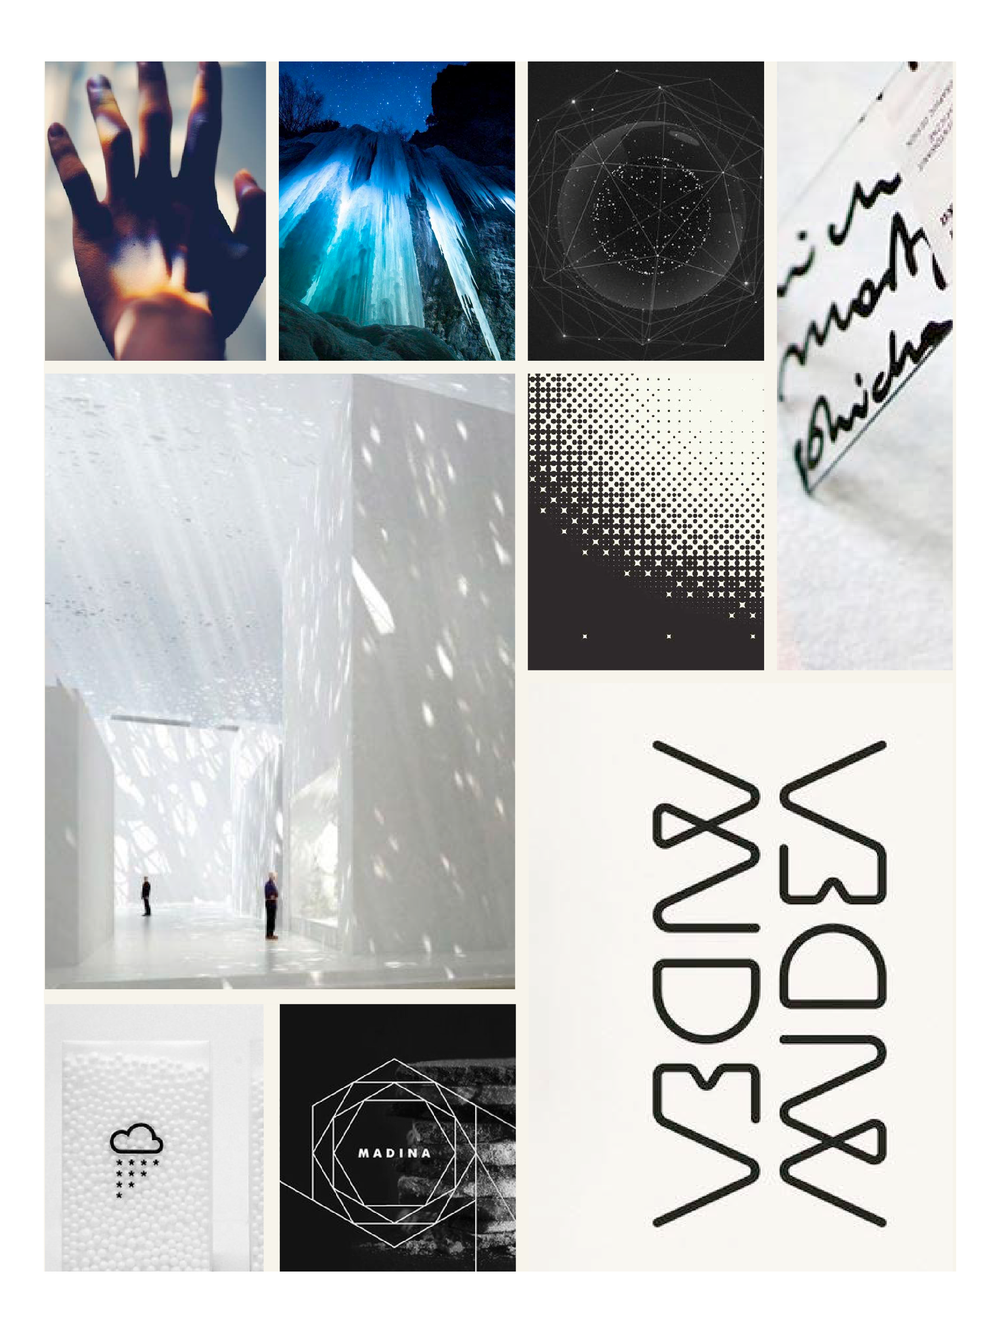 Lumen Farms Graphic Moodboard | Trout + Taylor www.troutandtaylor.com